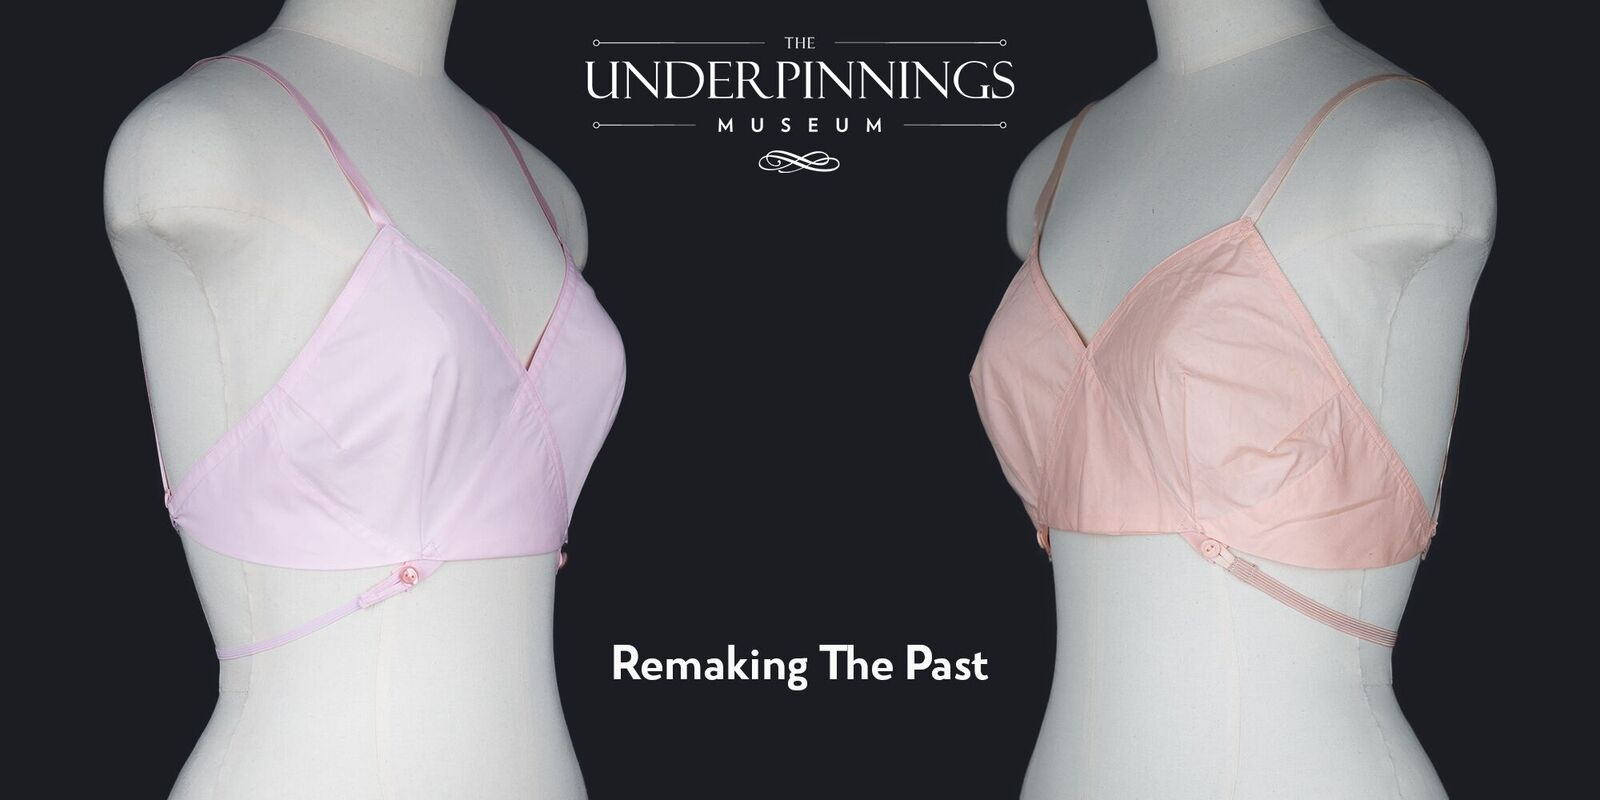 The Underpinnings Museum